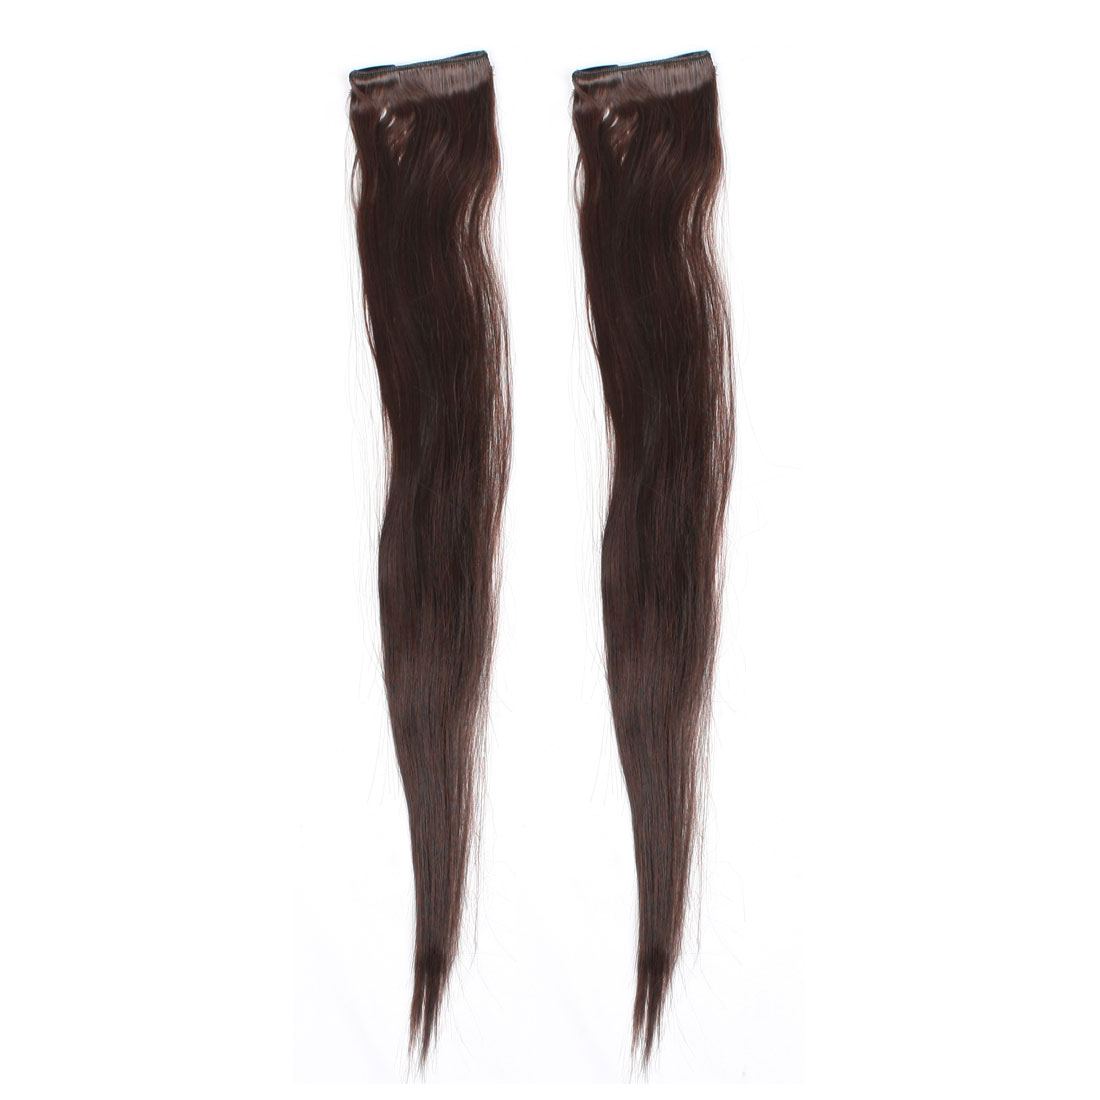 "Women Chestnut Colour Long Straight Ponytail Hairpiece 30"" 2 Pcs"